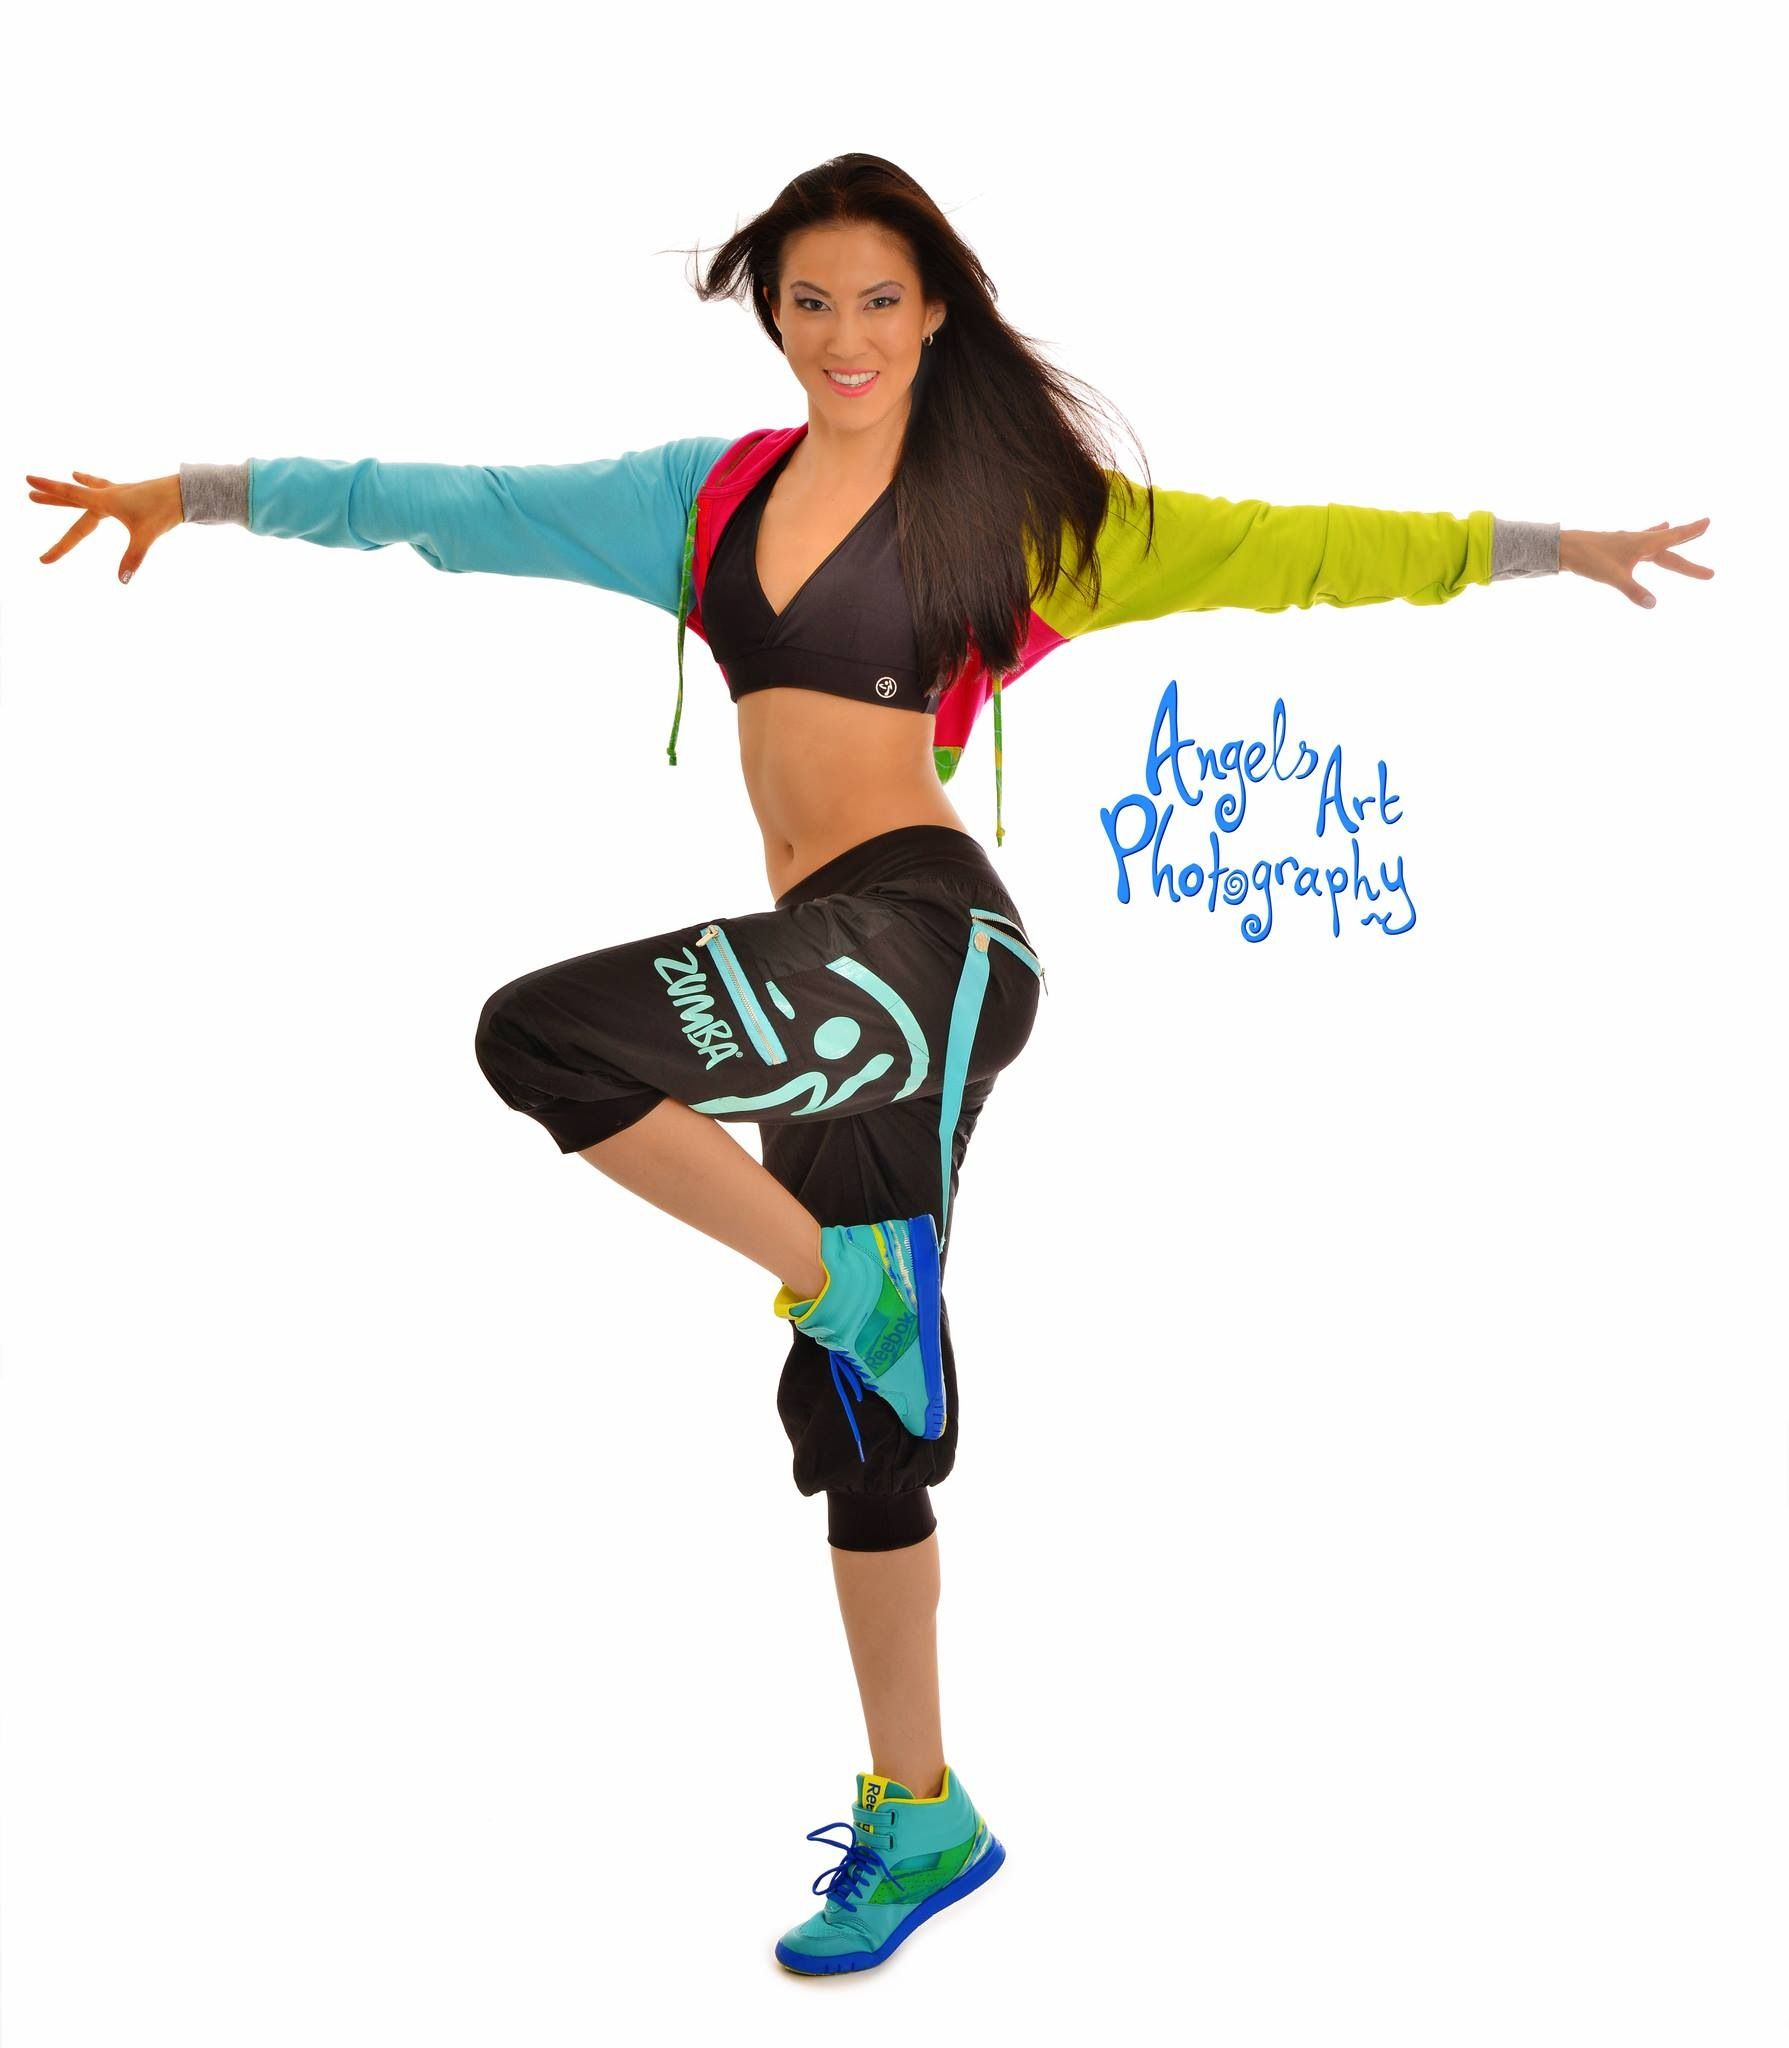 Pin by Janina Schmalen on Fitness by AngelsArt Photography  Zumba